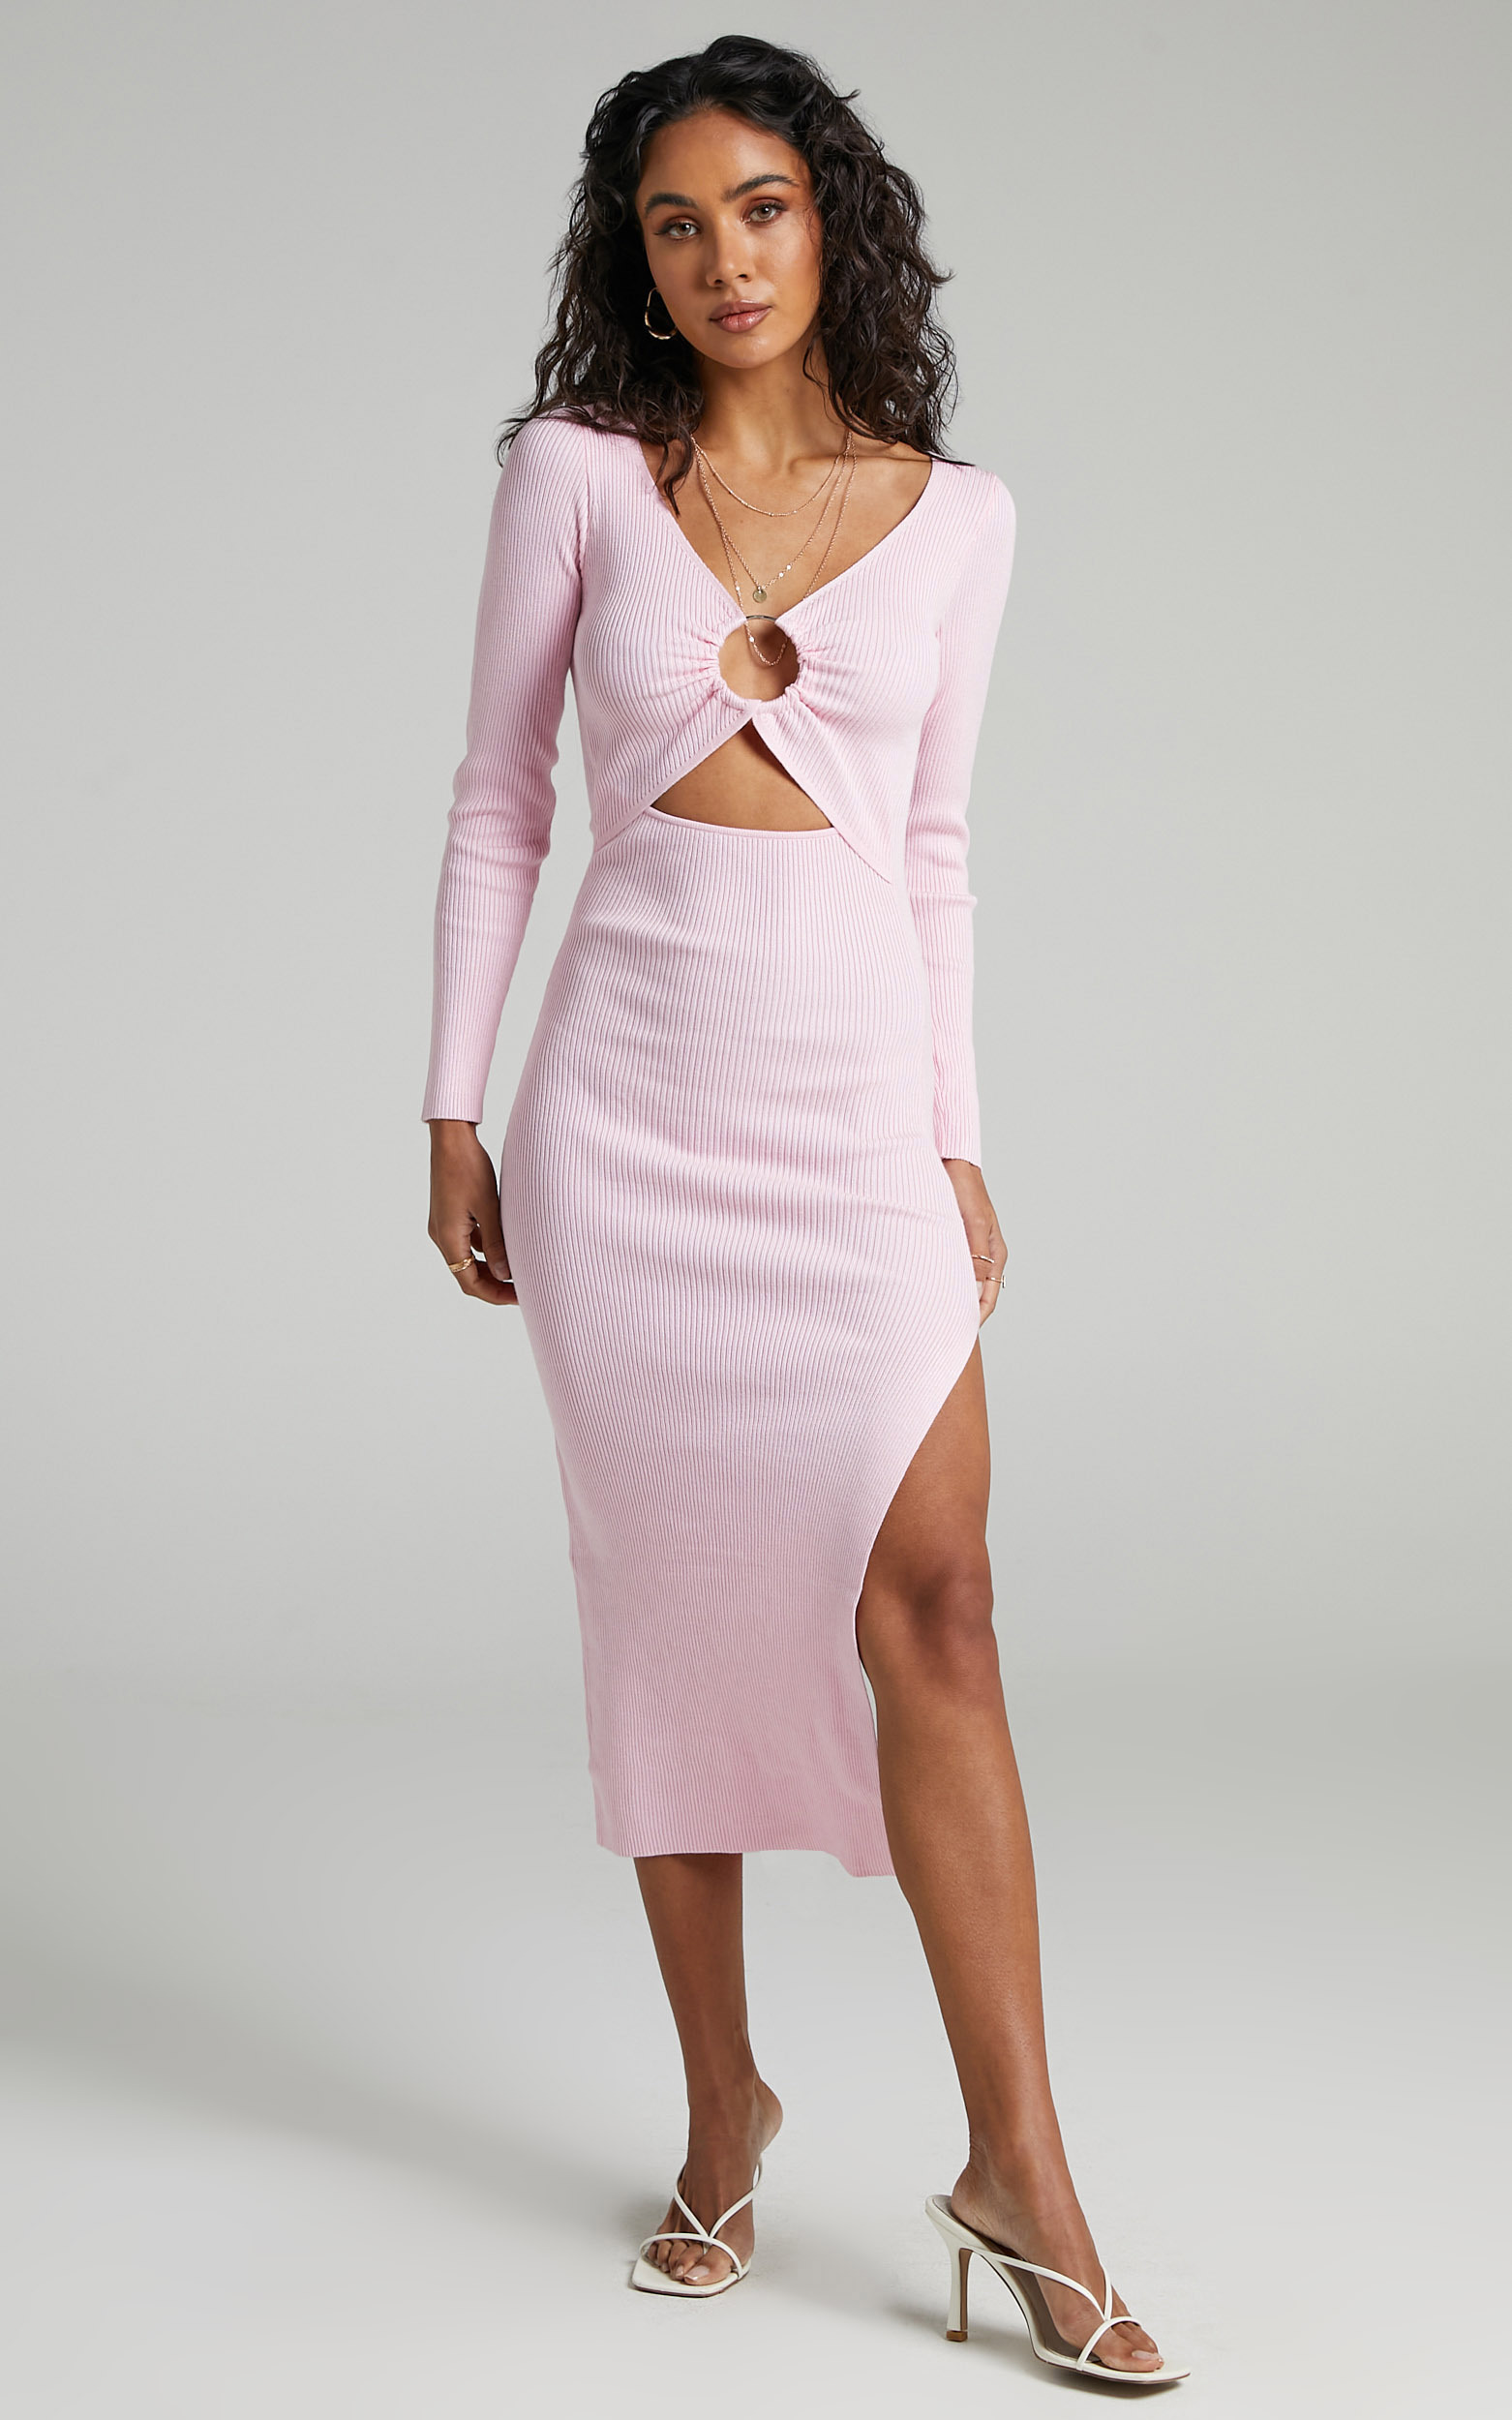 Binky Knit Dress in Ice Pink - 06, PNK1, hi-res image number null